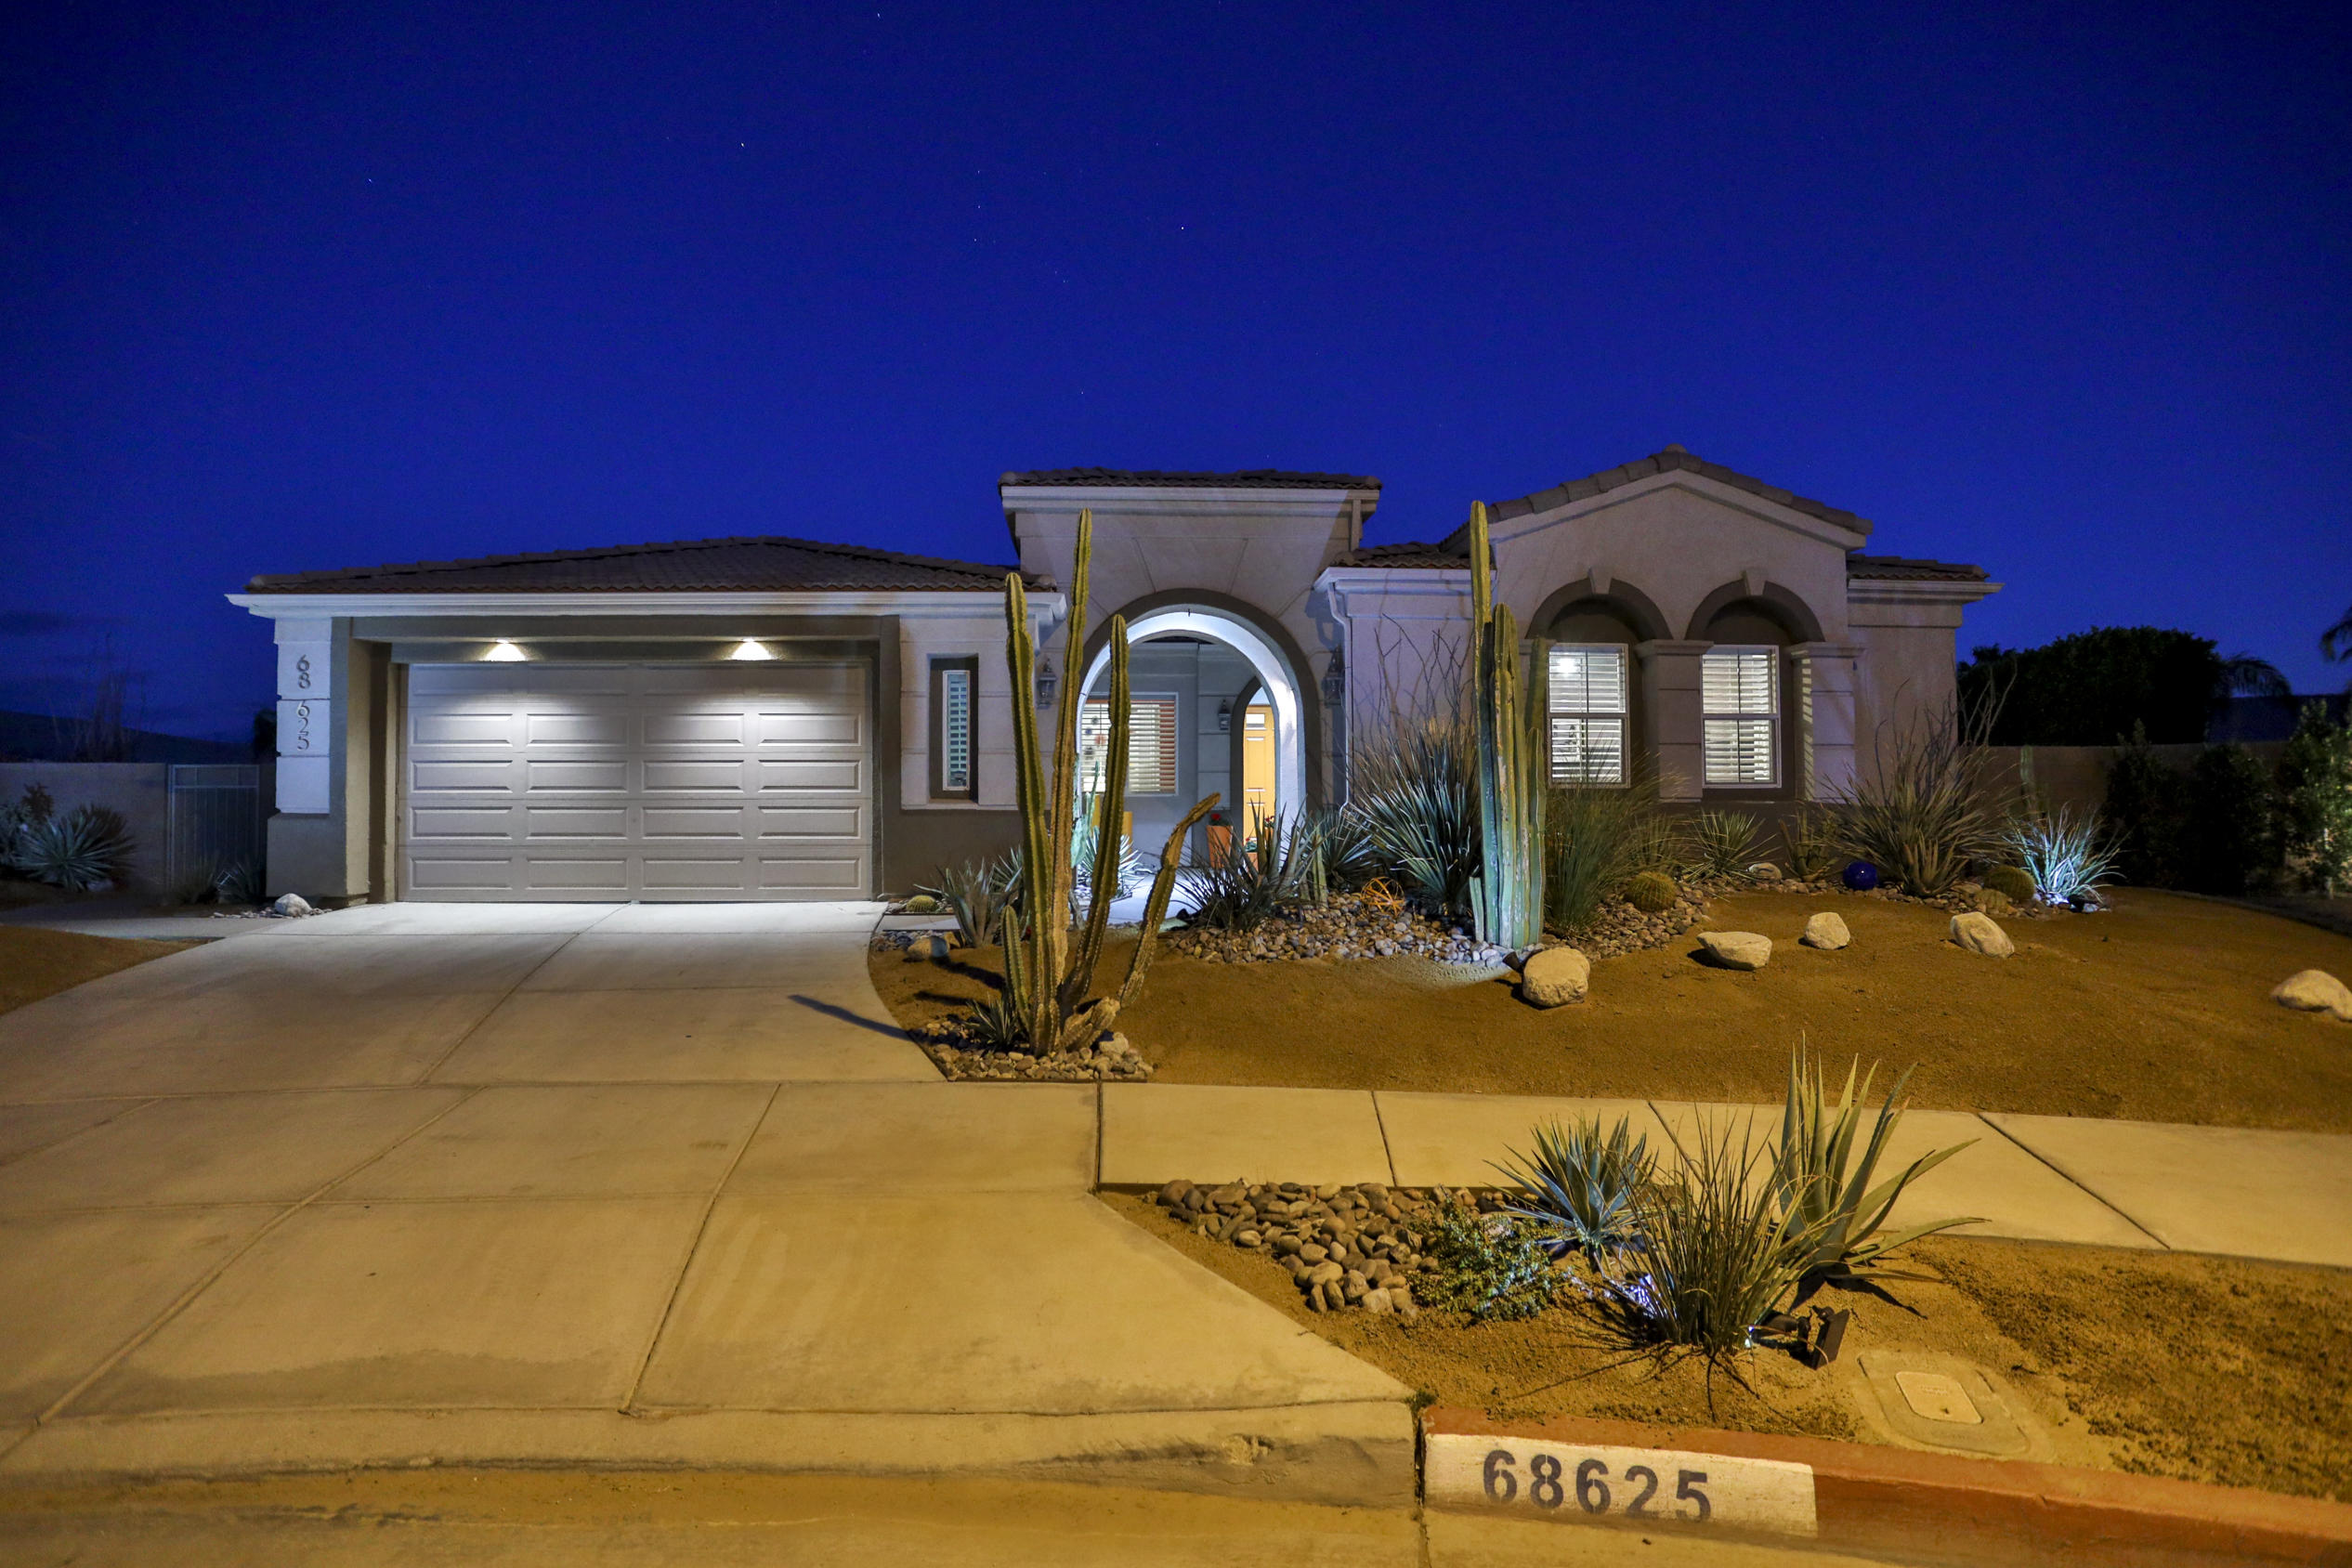 Entertainers Dream!! This highly upgraded 4 bed, 3.5 bath, detached casita, cul-de-sac, pool home is located on FEE land and has it all!  With over 2,600 this home flaunts an open floor plan, gourmet kitchen, private pool & spa, built-in BBQ, outdoor fireplace, detached casita, dry bar, flex room and option to add a 5th bedroom. The bright kitchen features granite countertops, kitchen island, plenty of cabinets for storage, bar top seating, 5 range gas stove, double ovens, and opens to the living room and dining nook. The living room features high ceilings, Bose surround sound, fireplace and has direct access to the backyard. The Flex space off of the living room can be used as a 5th bedroom, second living room, or home office.  The spacious primary bedroom features high ceilings, a bonus room that could be used as a den, additional living area, or home gym, a great walk-in closet, double vanity, walk-in shower with bench seating & direct patio/pool access. The guest bedrooms are of good size with high ceiling, tile floors, ceiling fans, and are located on the opposite side of the Primary bedroom. The detached casita has its own entrance and is perfect for guests or family. The private backyard is amazing! With multiple areas to entertain you can sit by the covered patio and enjoy the fireplace or relax poolside, or watch the sunset from the elevated pool deck! Too many upgrades and features to mention! Inquire about the upgrades and features list...this home is a MUST SEE!